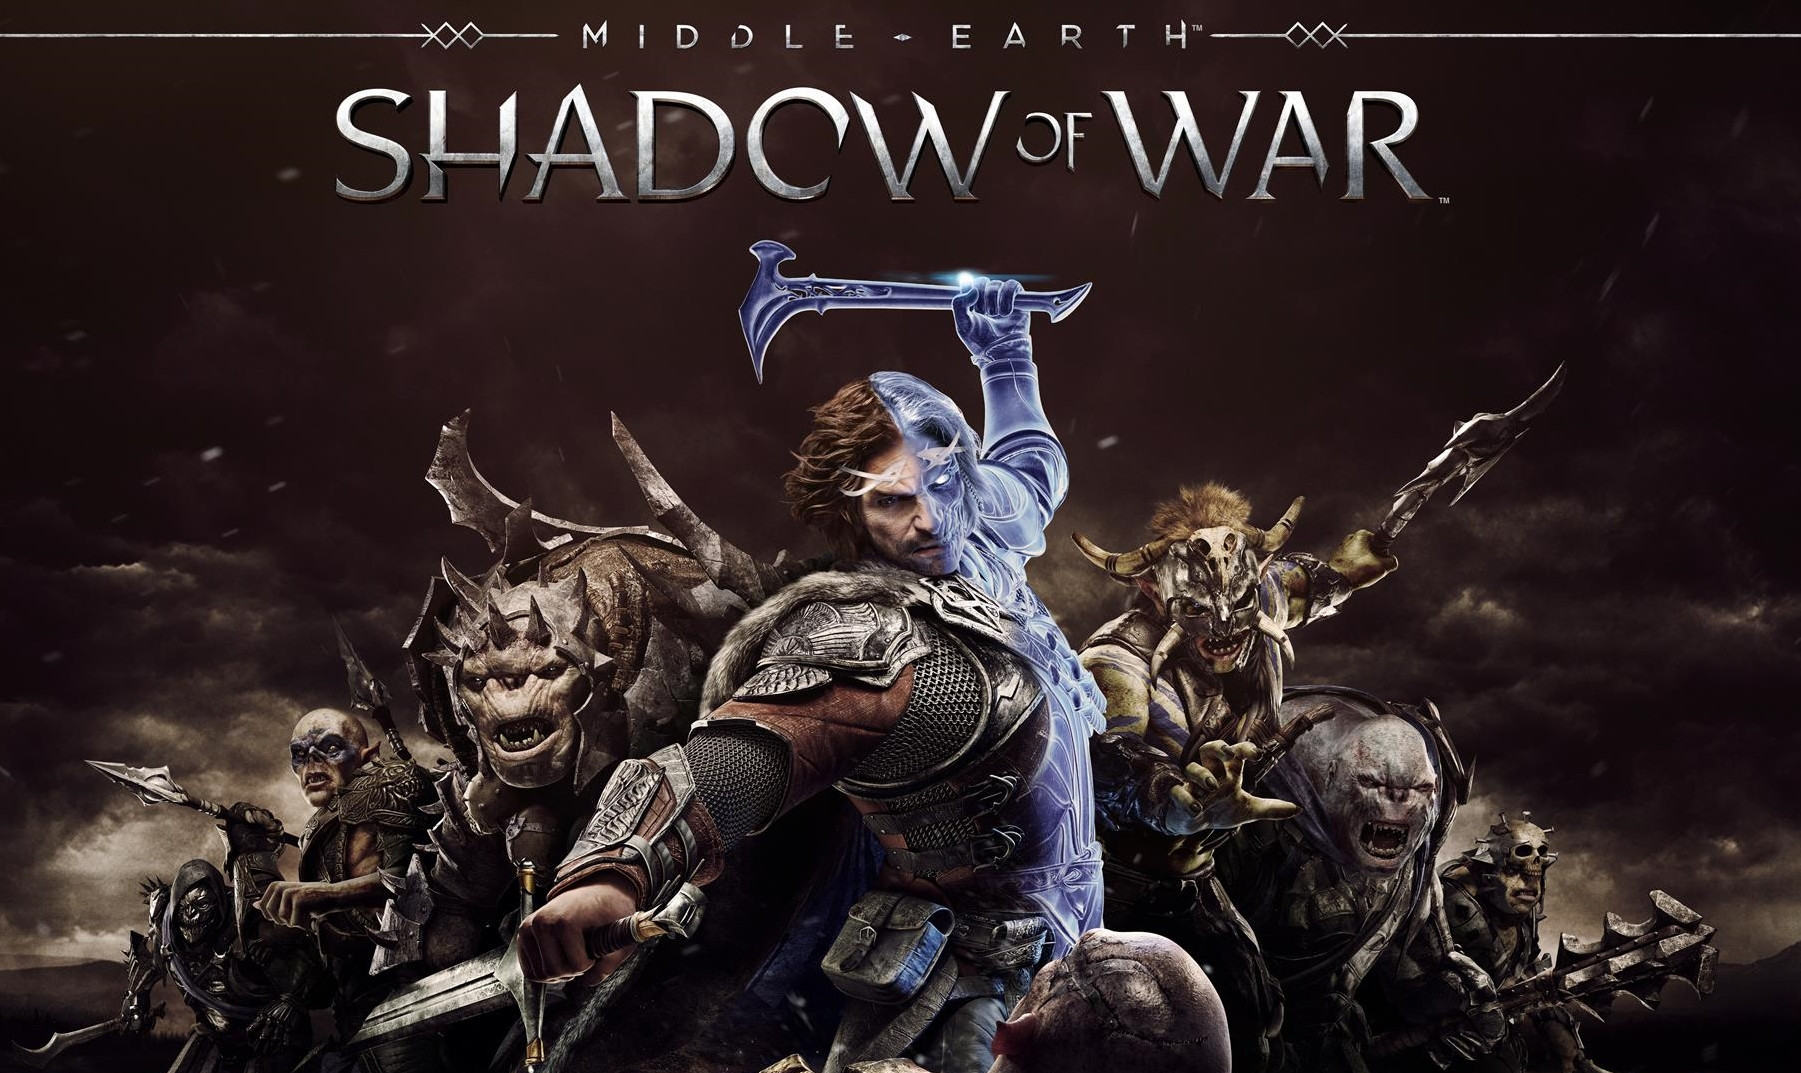 News Posts matching 'Middle Earth: Shadow of War' | TechPowerUp